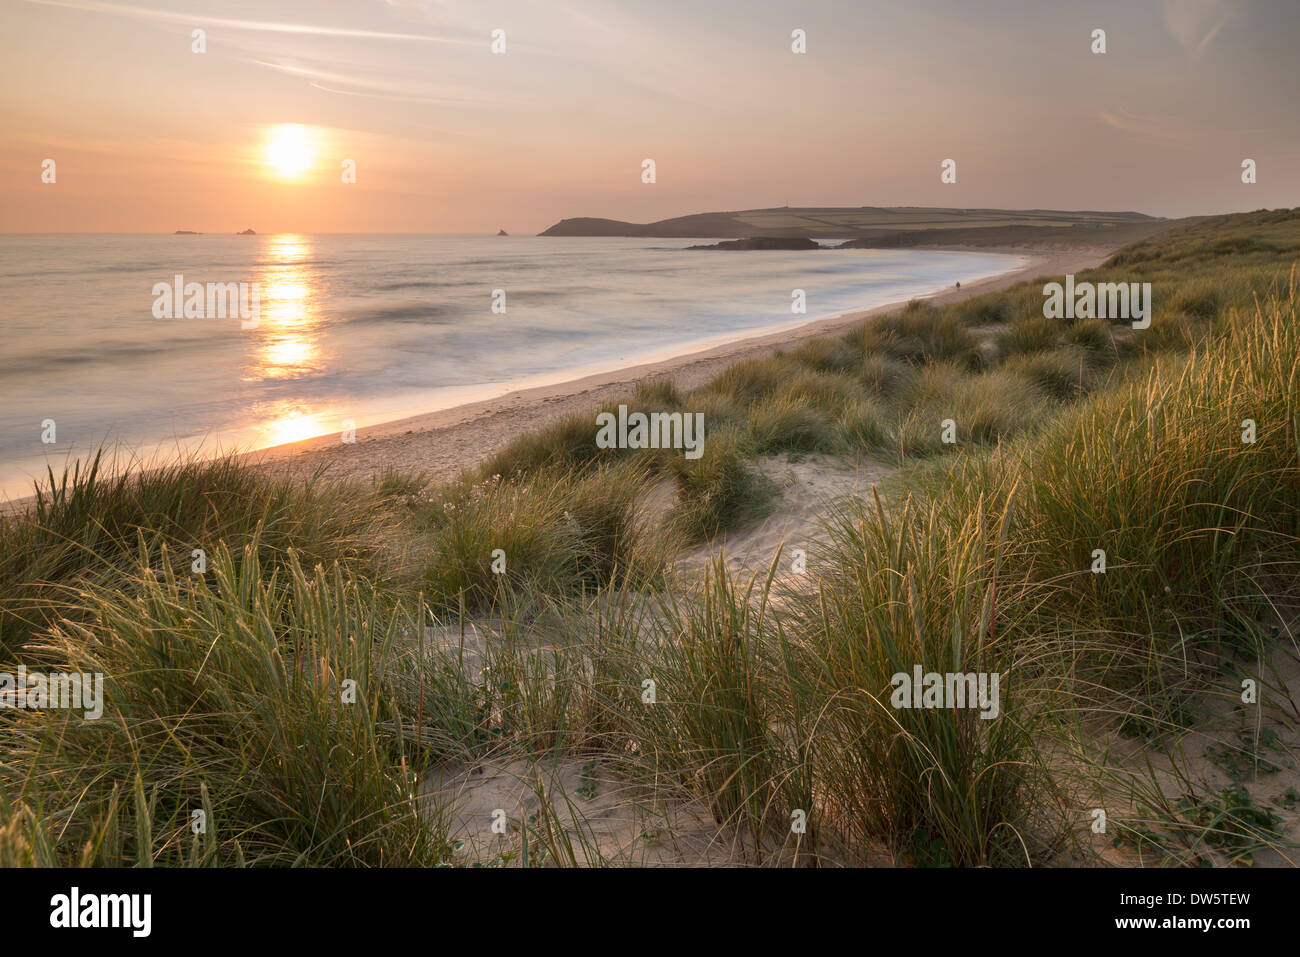 Sunset over Constantine Bay in North Cornwall, England. Summer (June) 2013. - Stock Image